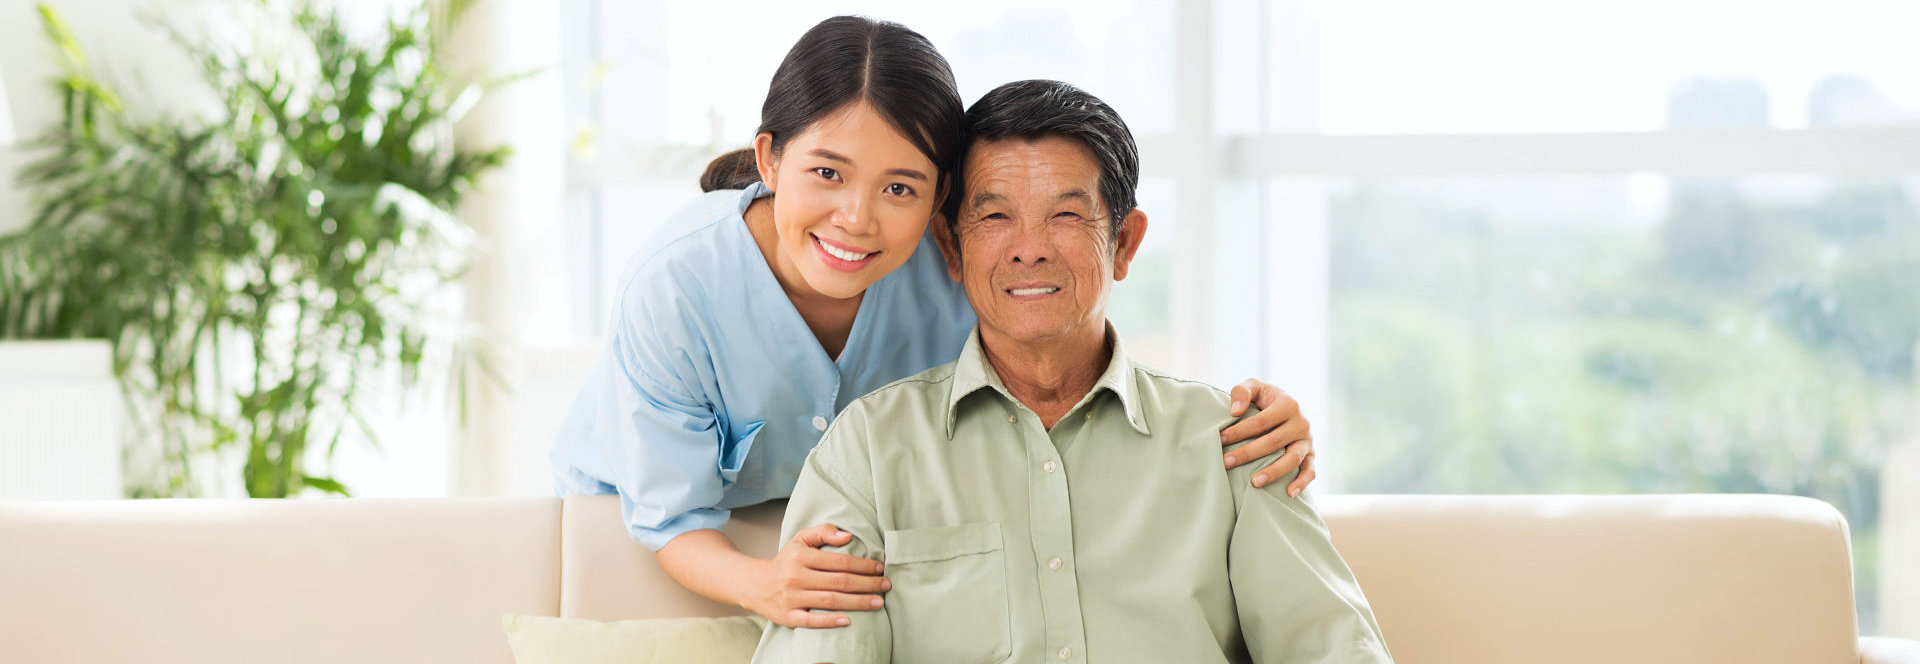 caregiver and elder man in couch smiling